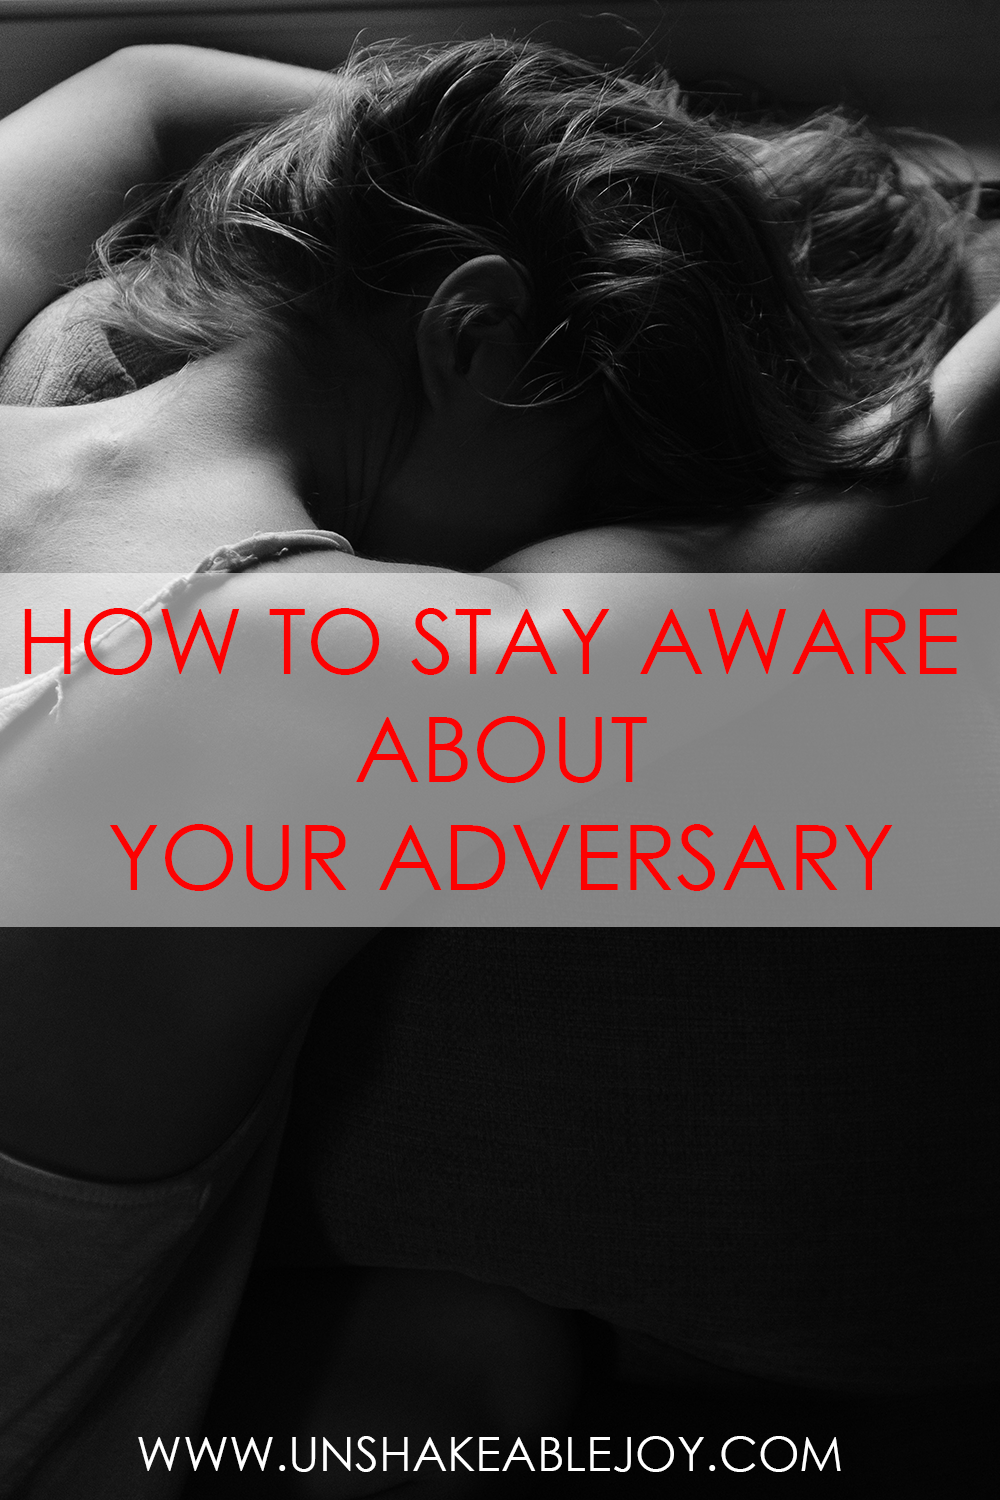 how to stay aware about your adversary